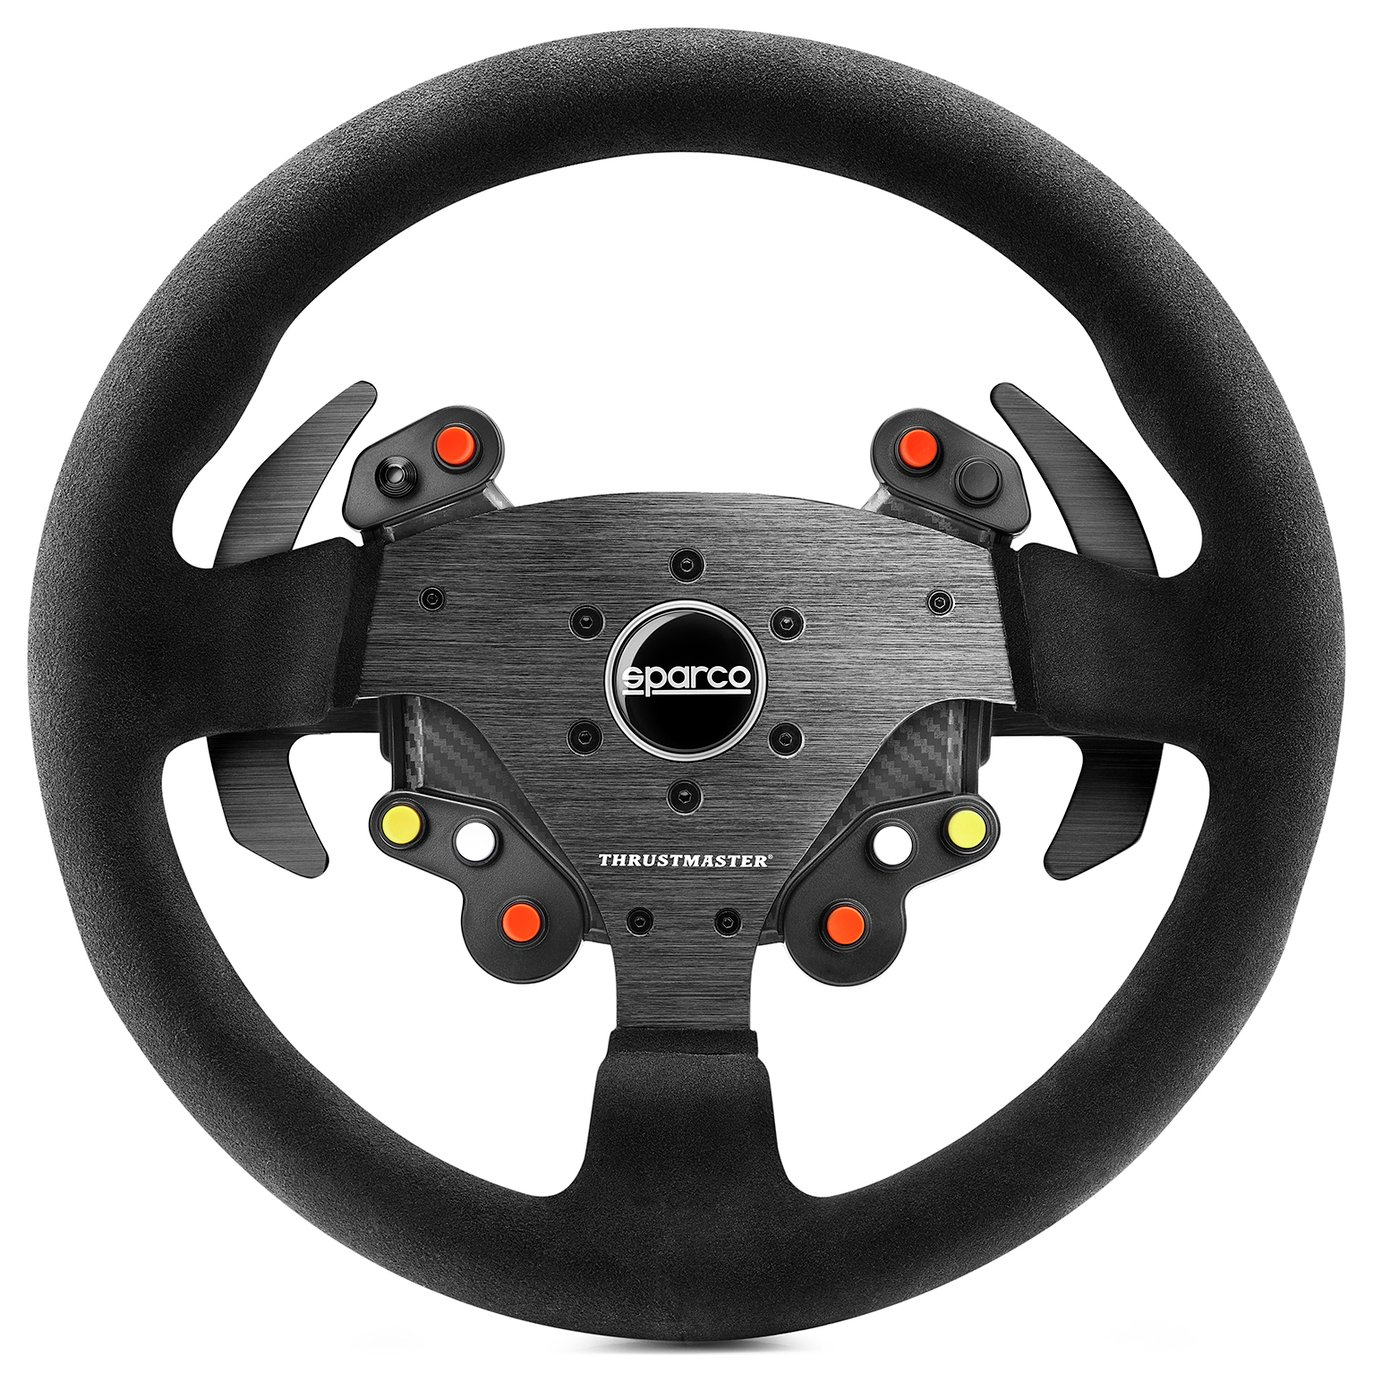 Image of Thrustmaster Rally Wheel Sparco R383 Steering Wheel Add-On